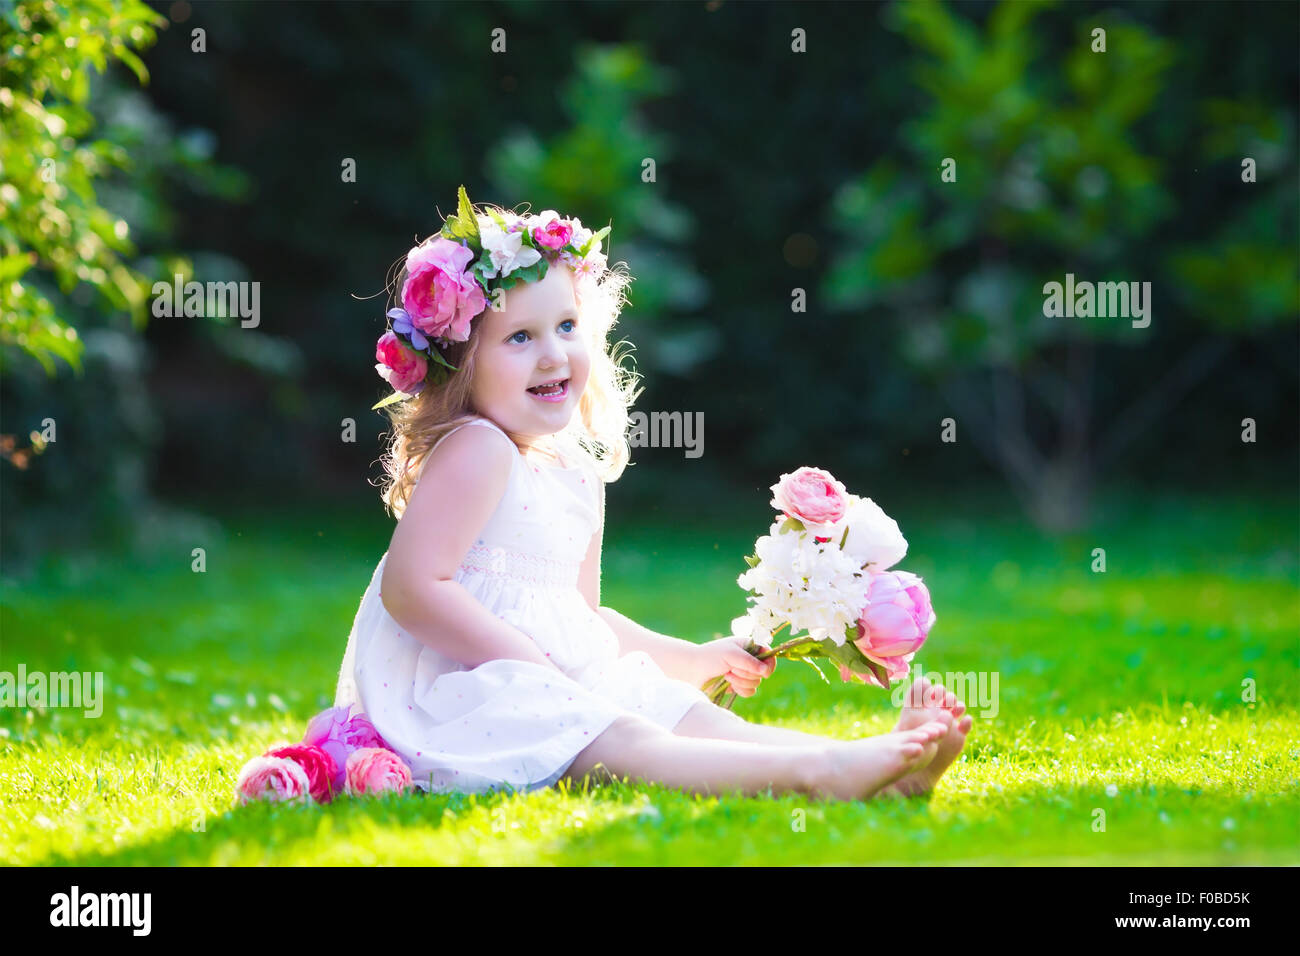 little cute girl with pink flowers. child wearing a white dress